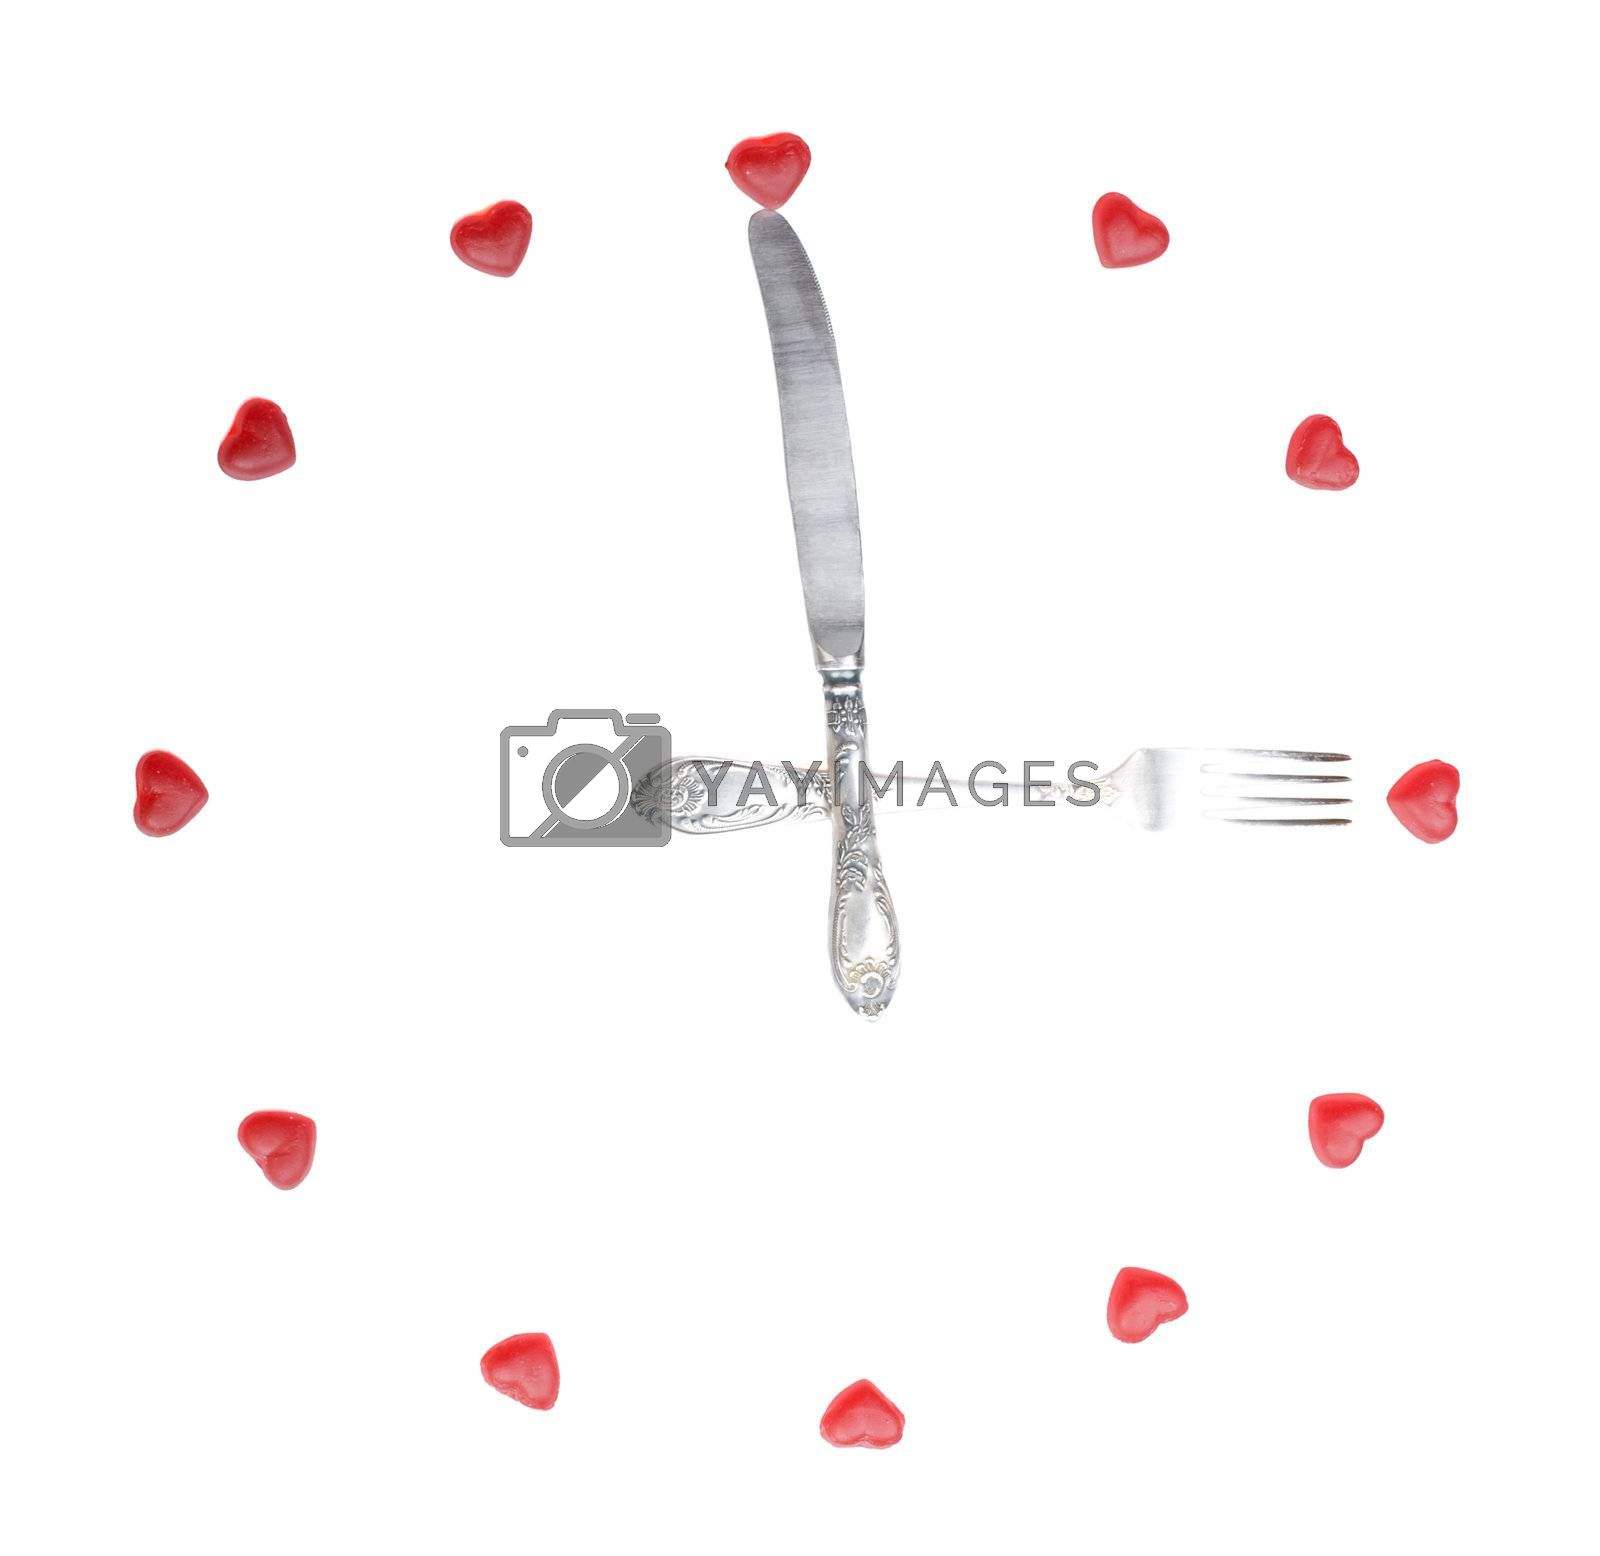 clock made from fruit jellies and dishware, show meal time, isolated on white